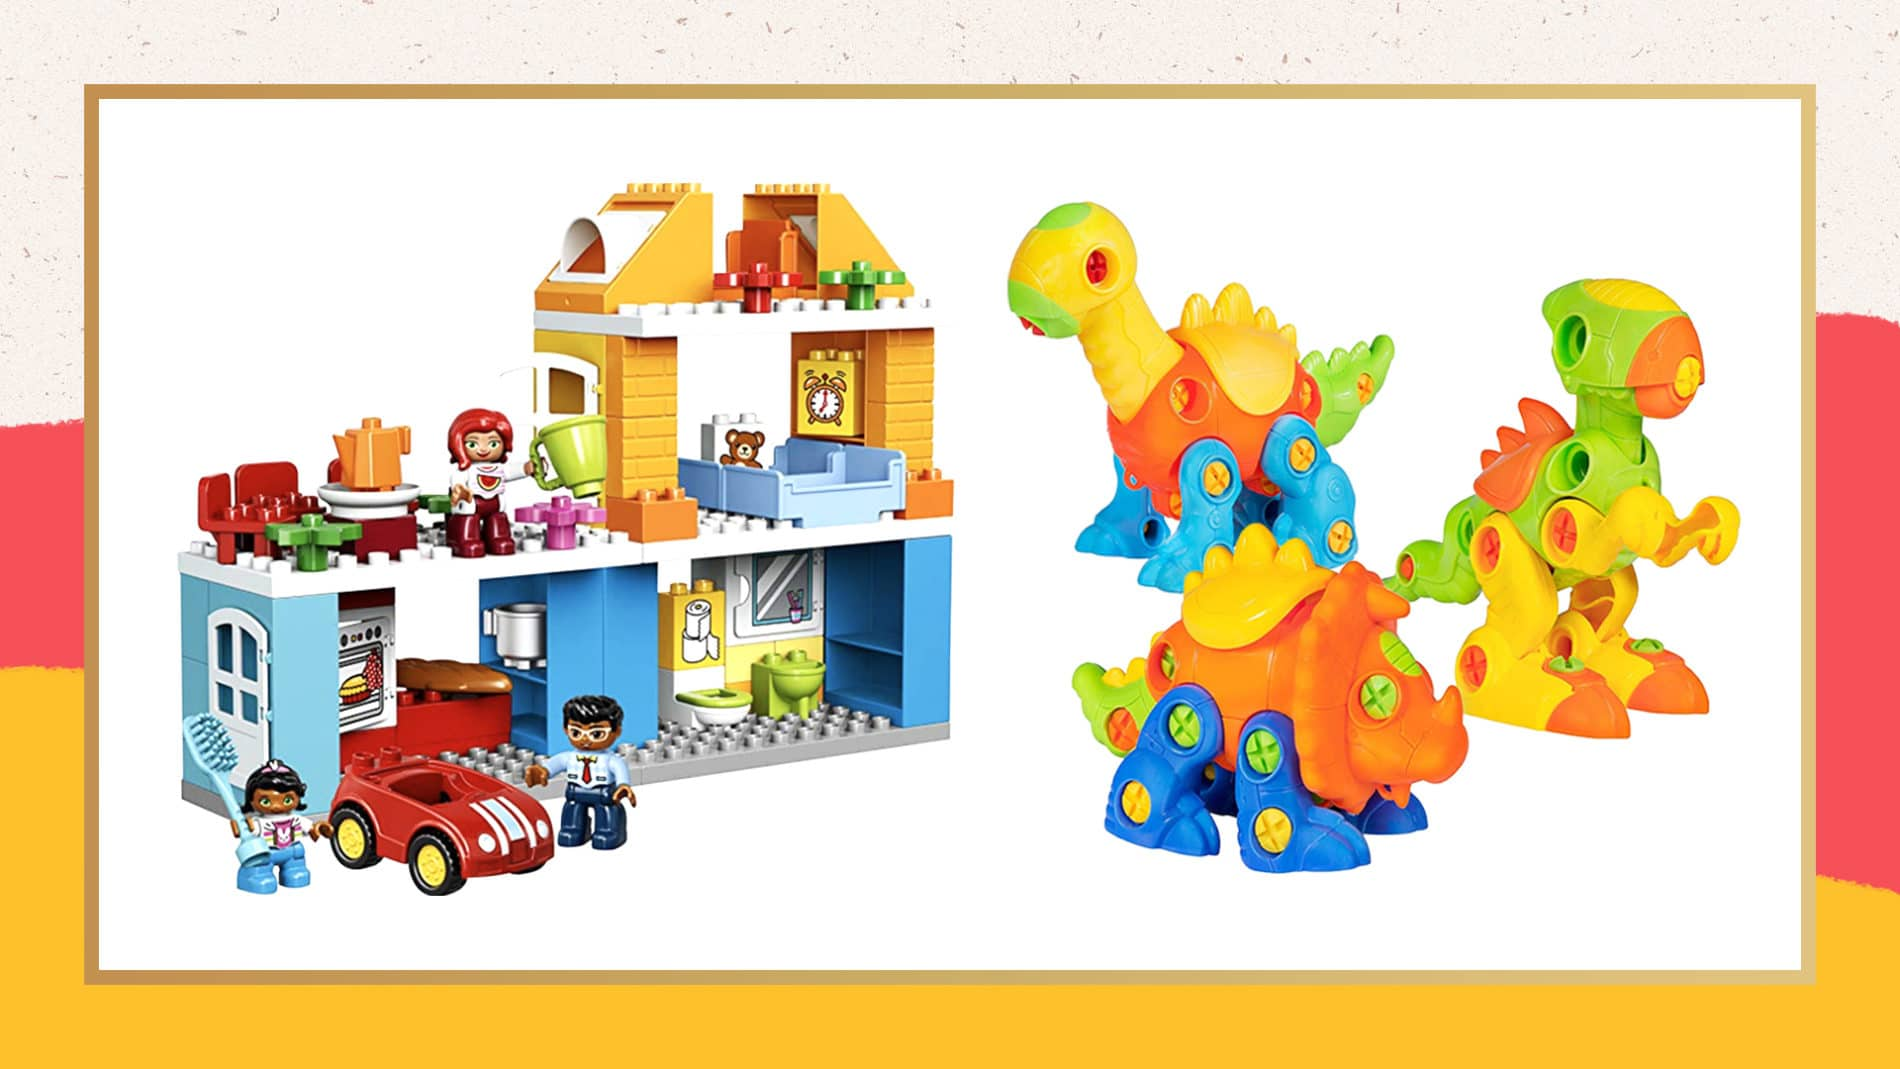 16 Best Building Toys For Kids Of All Ages, According To Experts